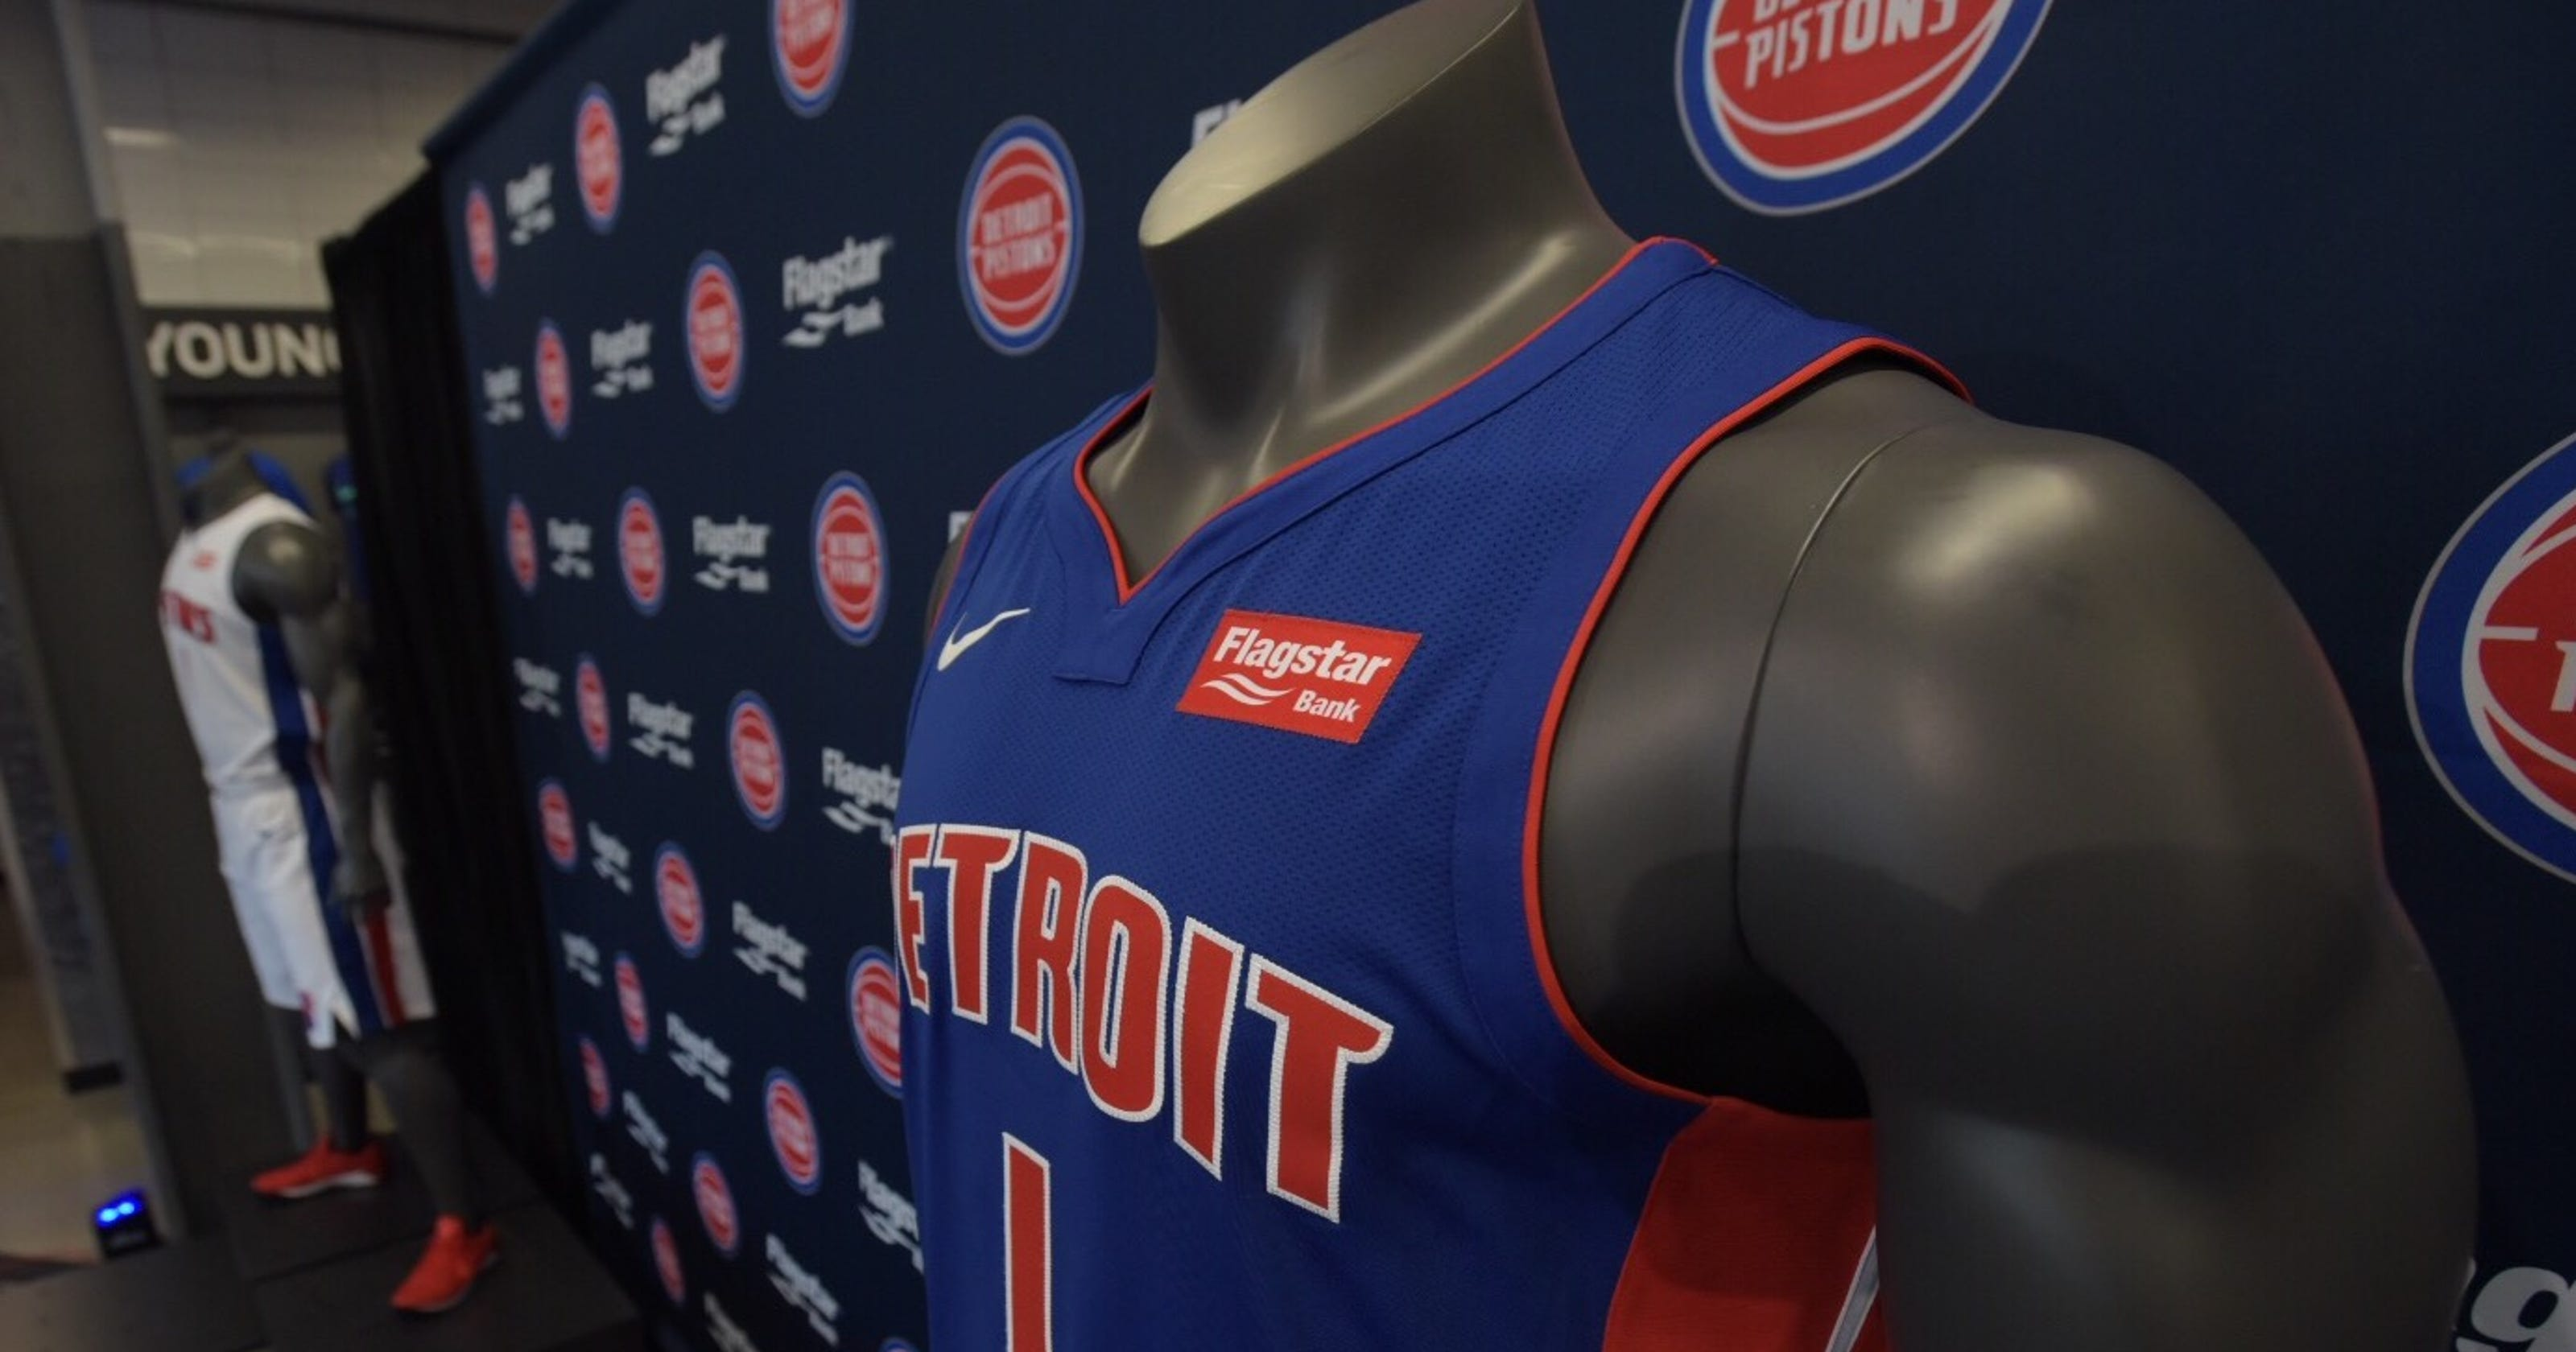 A big deal   Pistons add Flagstar Bank ad to jerseys ae149365c